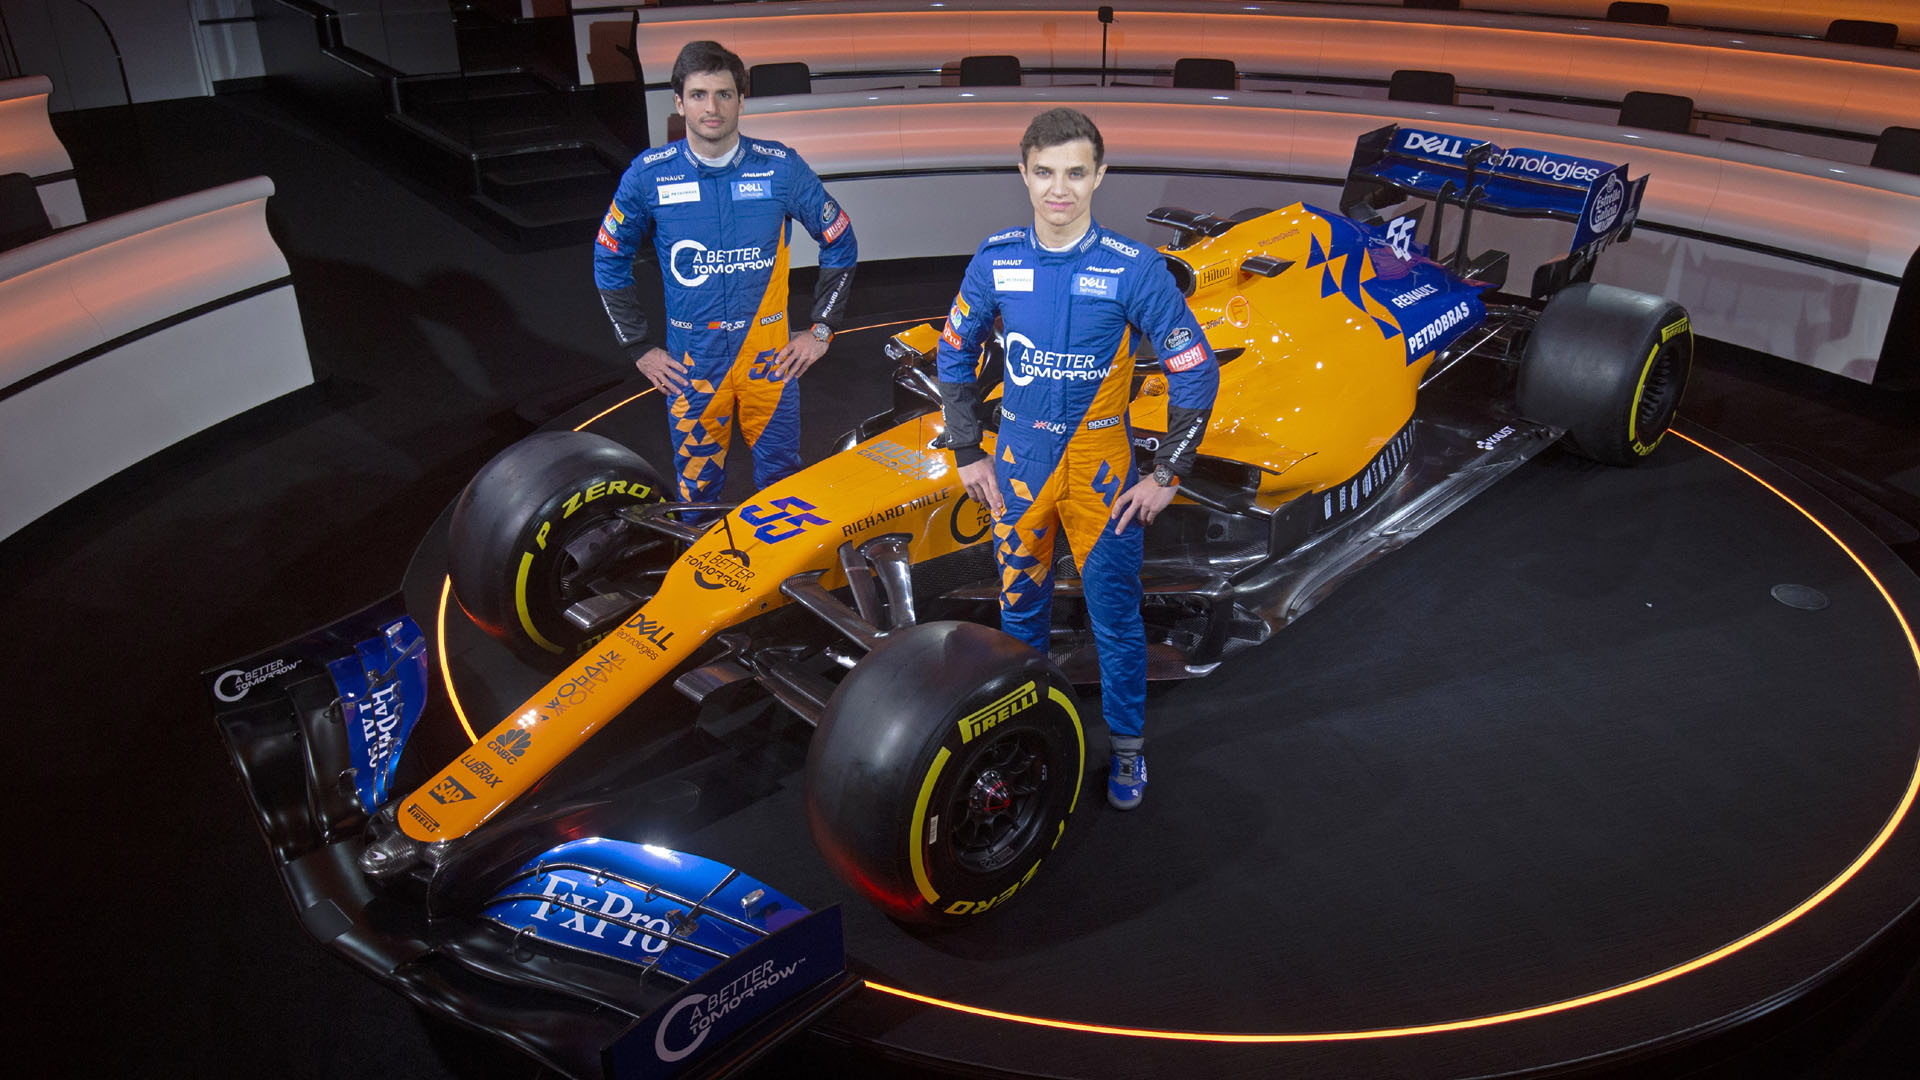 Mclaren Mcl34 Launch The Team S New 2019 F1 Car Revealed Formula 1